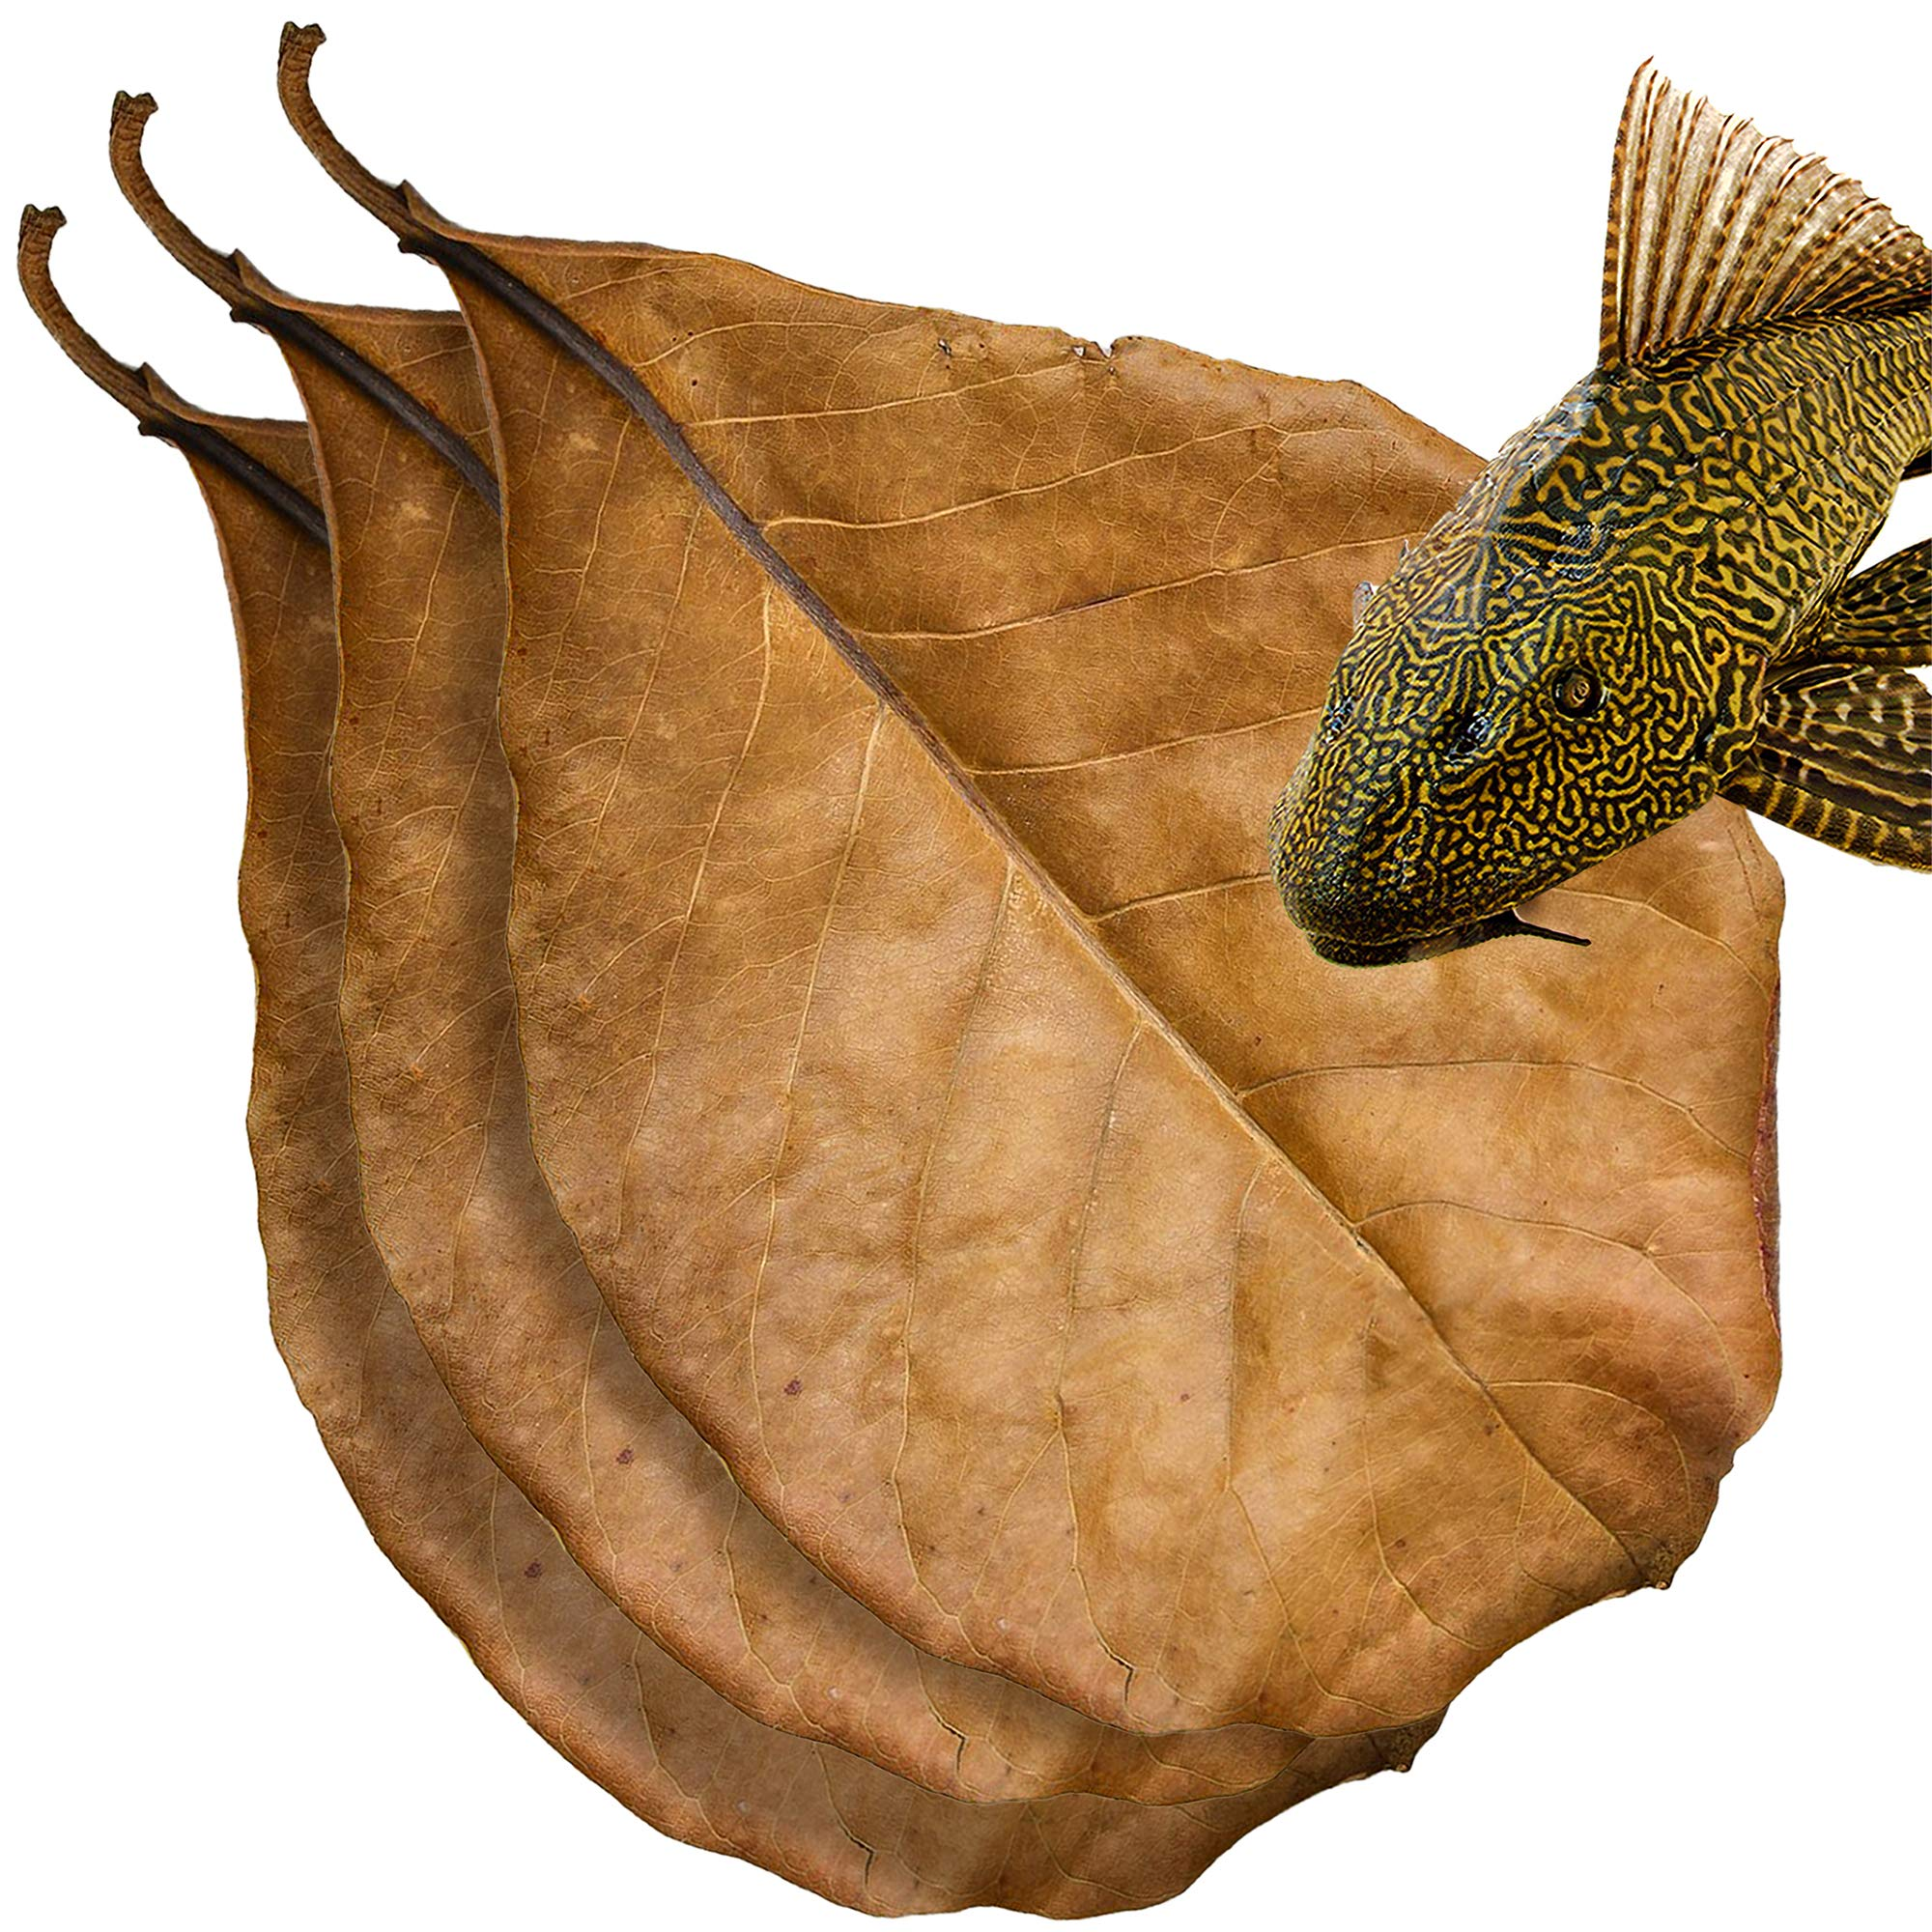 SunGrow Indian Almond Leaves for Pleco, Dried Leaves for Spawning, Expedite Healing Process Post Injury, Source of Nutrition, Create Blackwater Habitat for Bottom Feeders Like Catfish, Cory & Loach